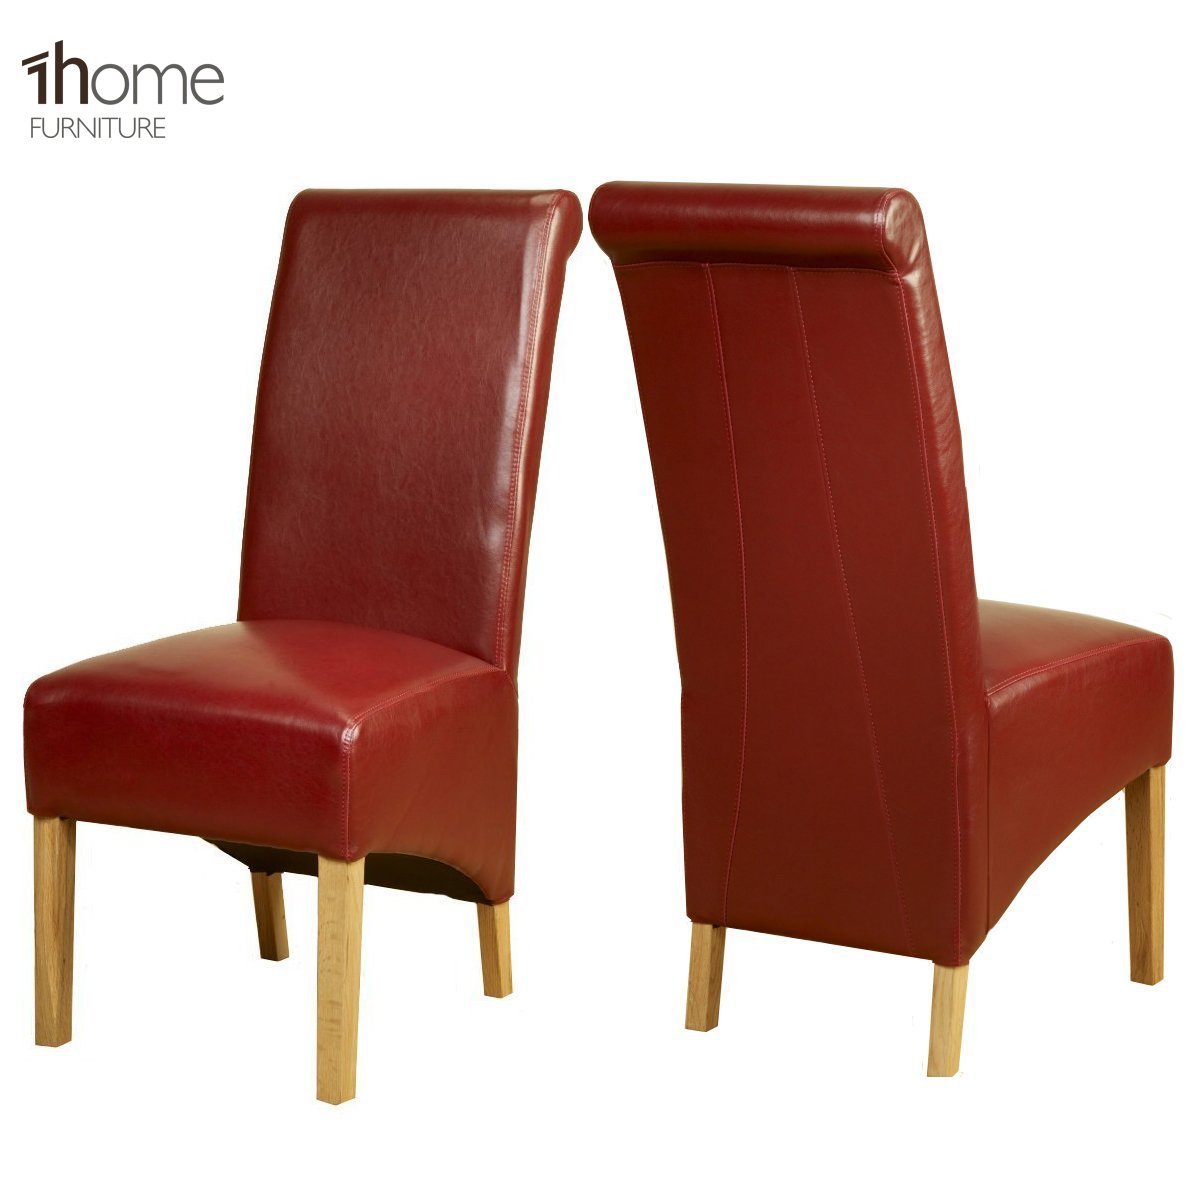 1home Leather Dining Chairs Scroll High Top Back Oak Legs Furniture ...